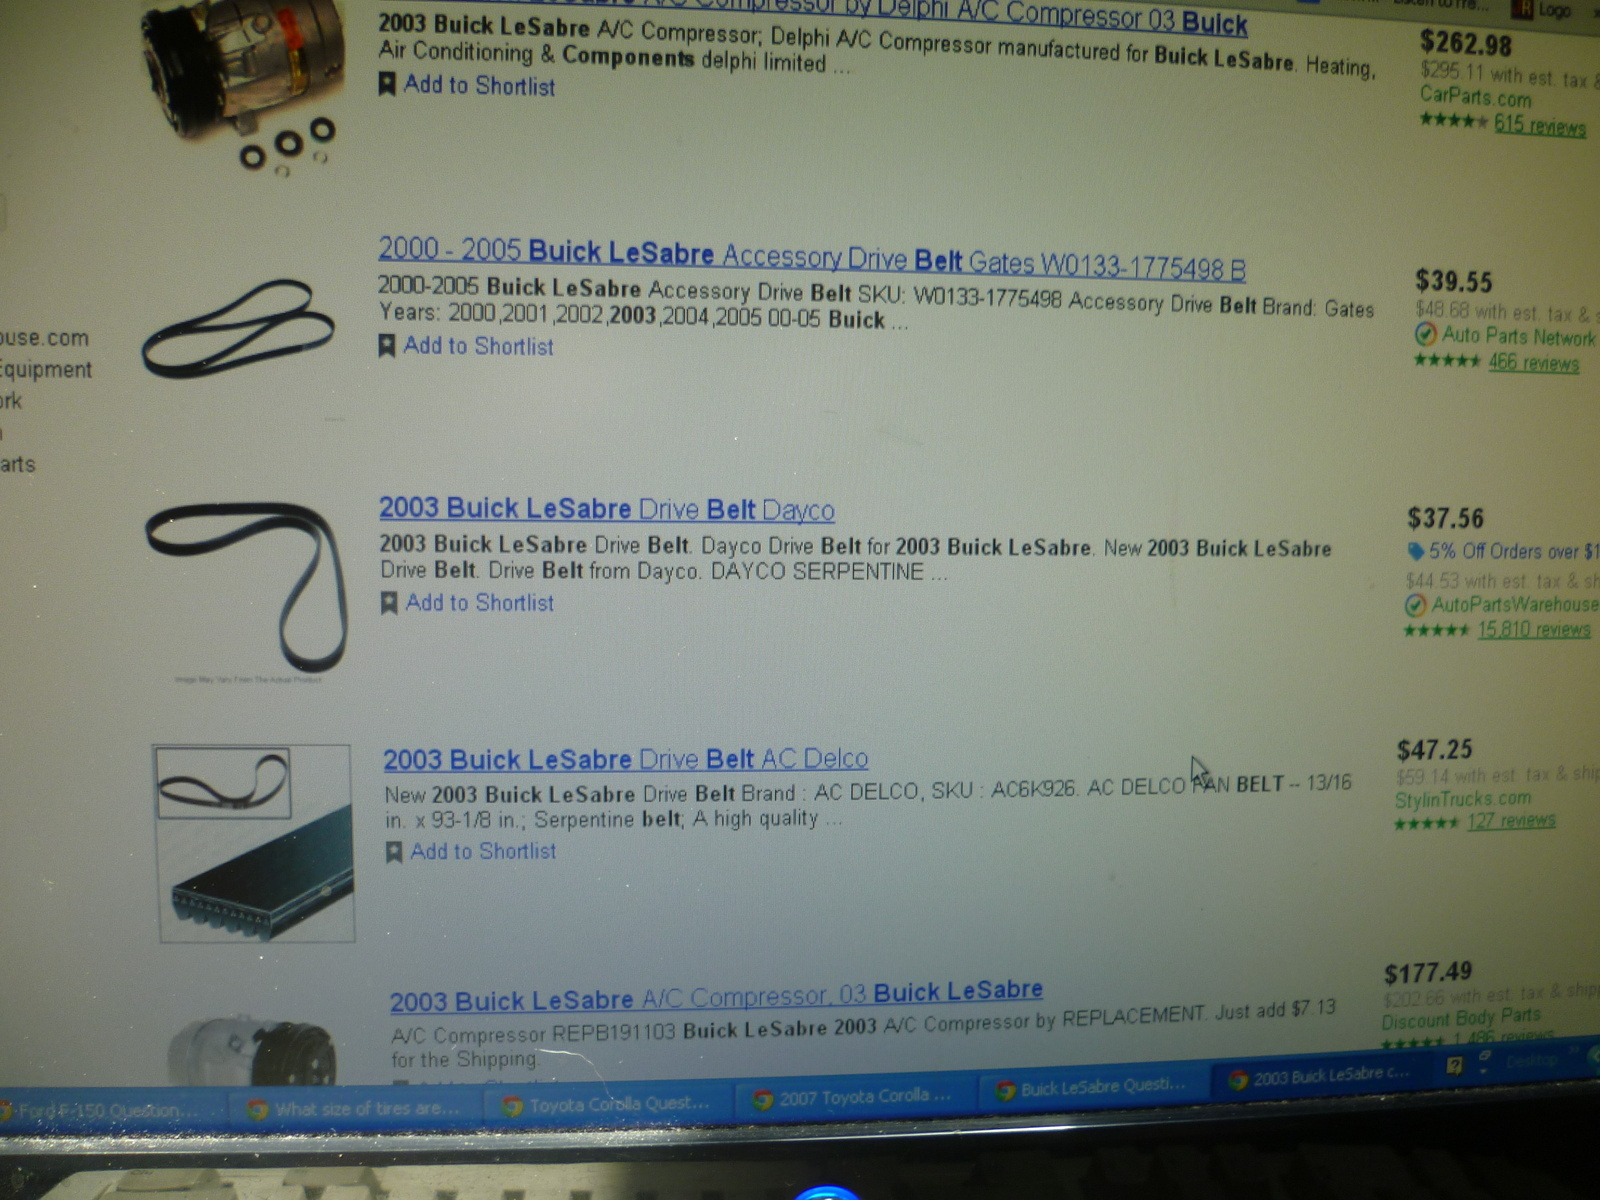 pelican buick battery htm condition bmw sensor extra lesabre oil large techarticles image engine series replacement